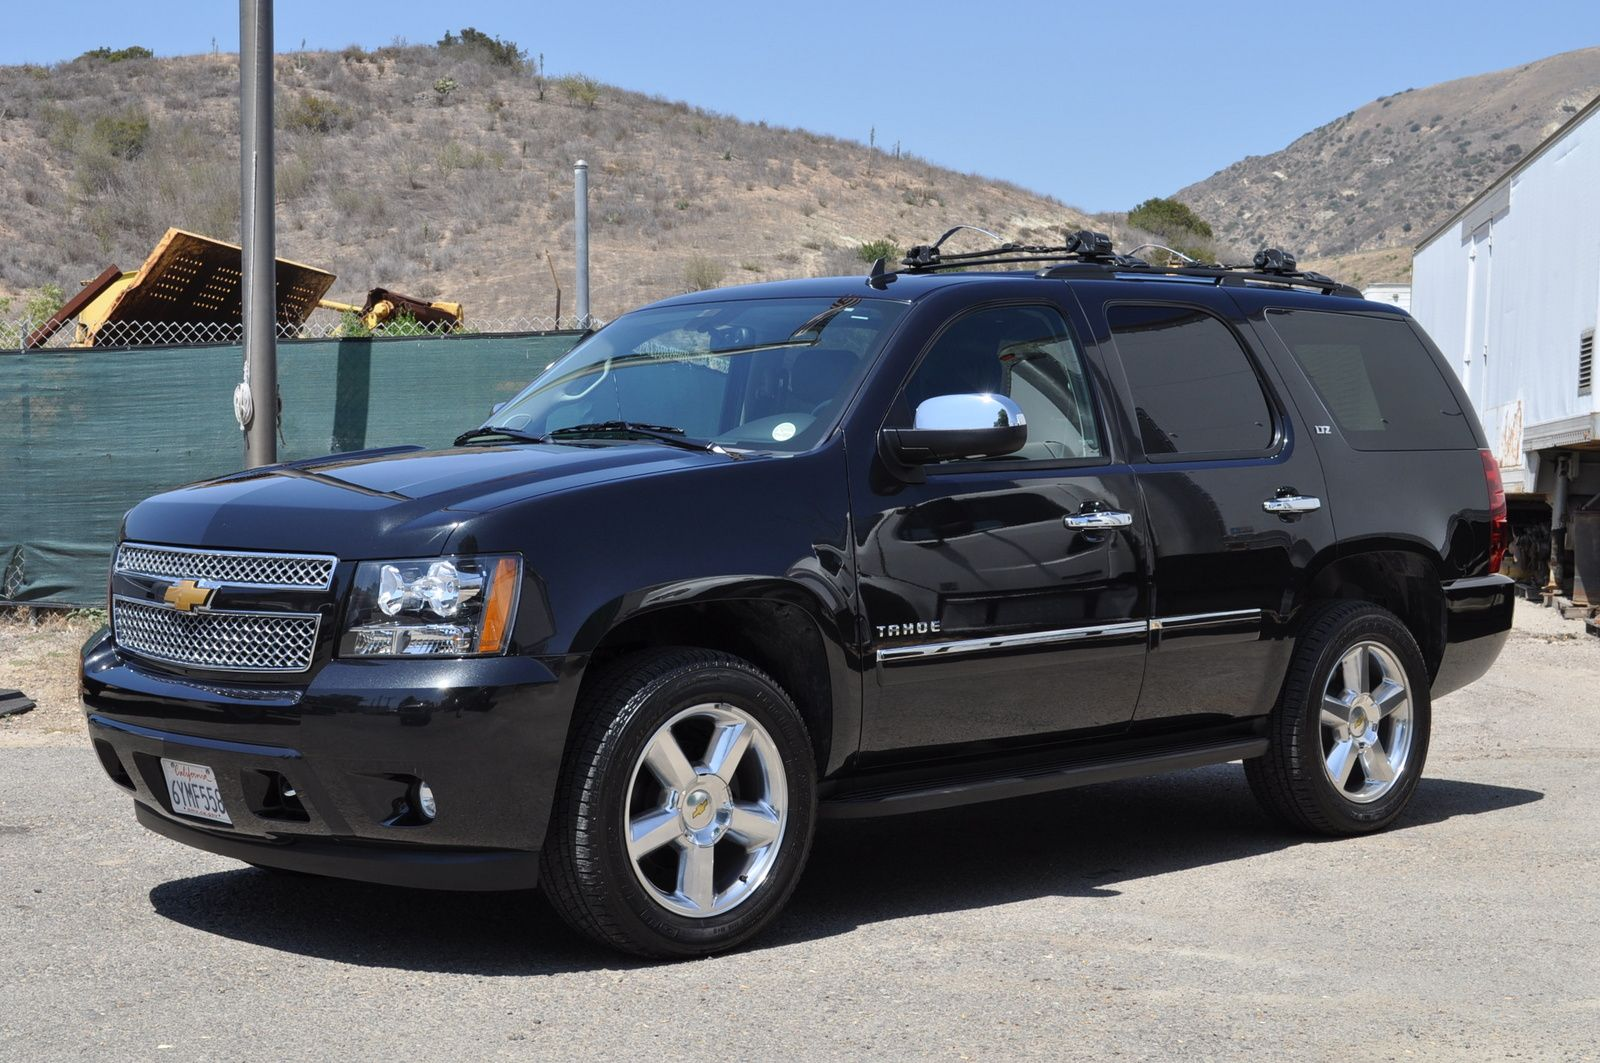 Love This Car 2013 Chevrolet Tahoe Ltz For Improved Interior With